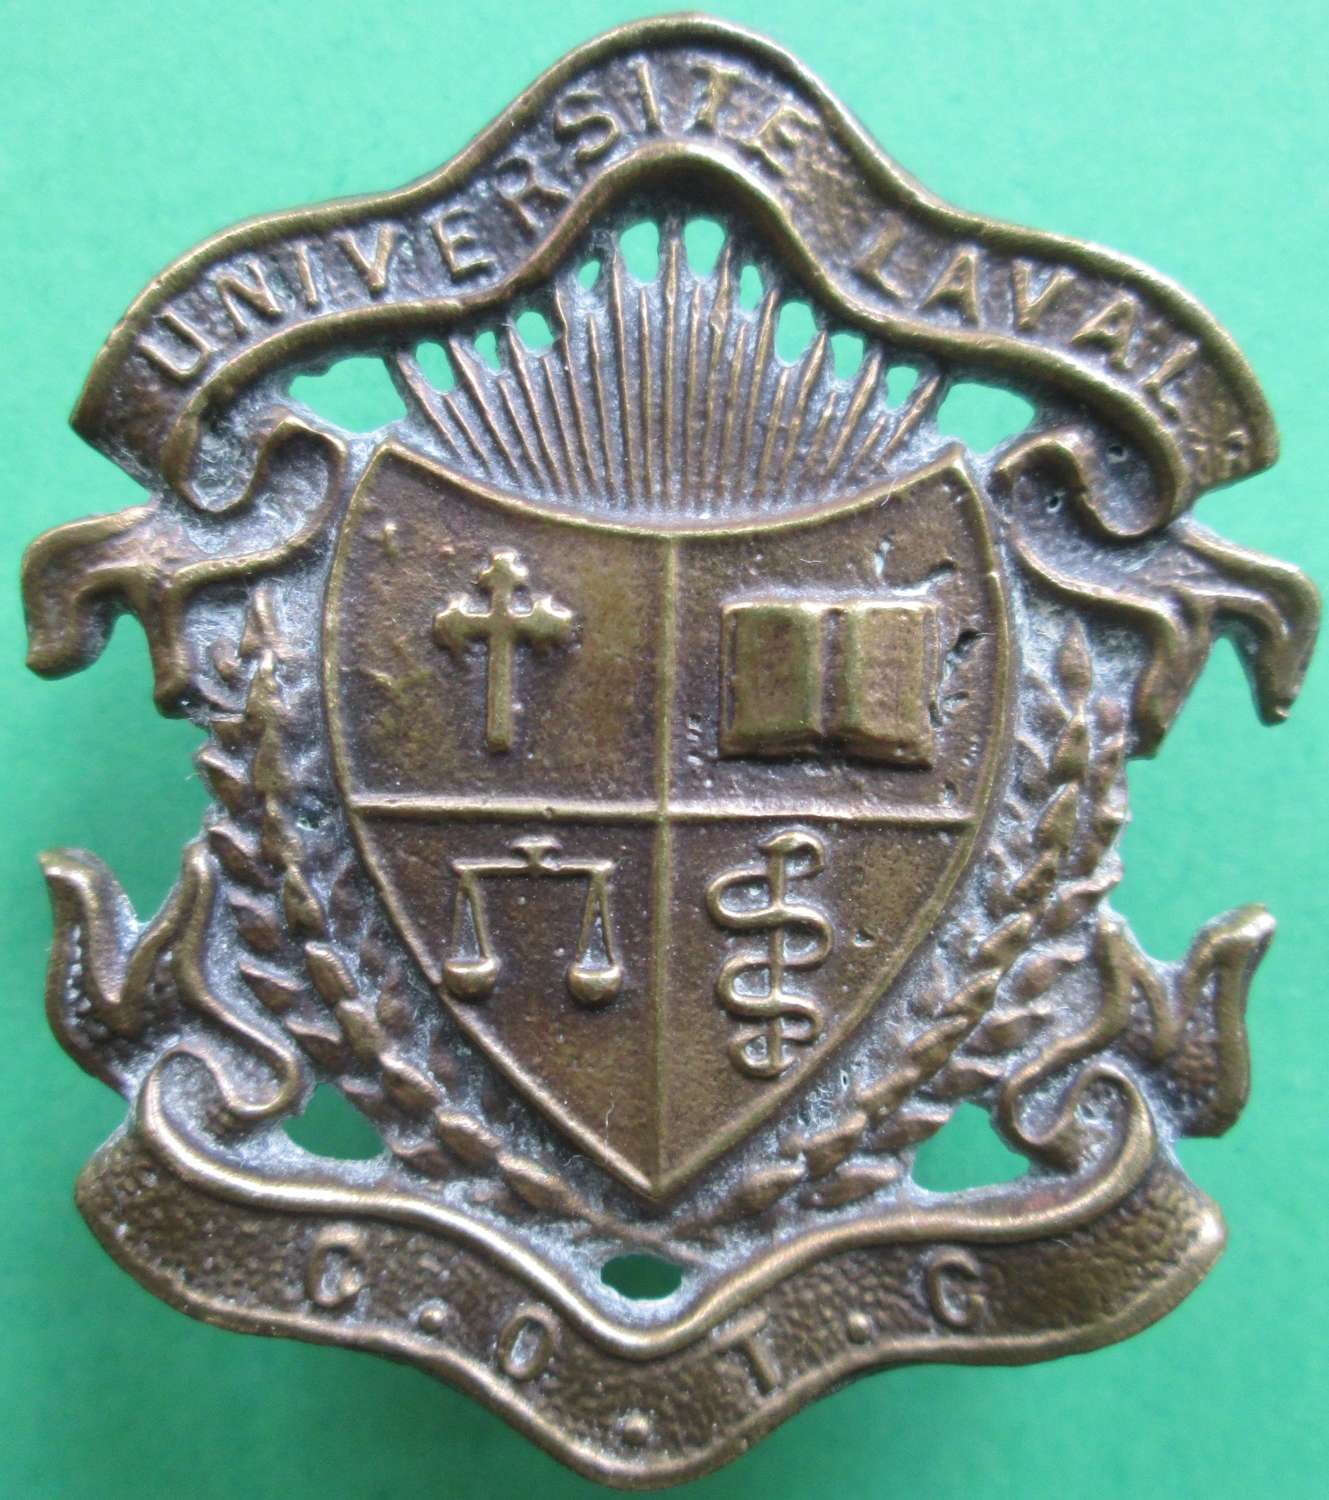 A CANADIAN OFFICER'S TRAINING COLLEGE CAP BADGE